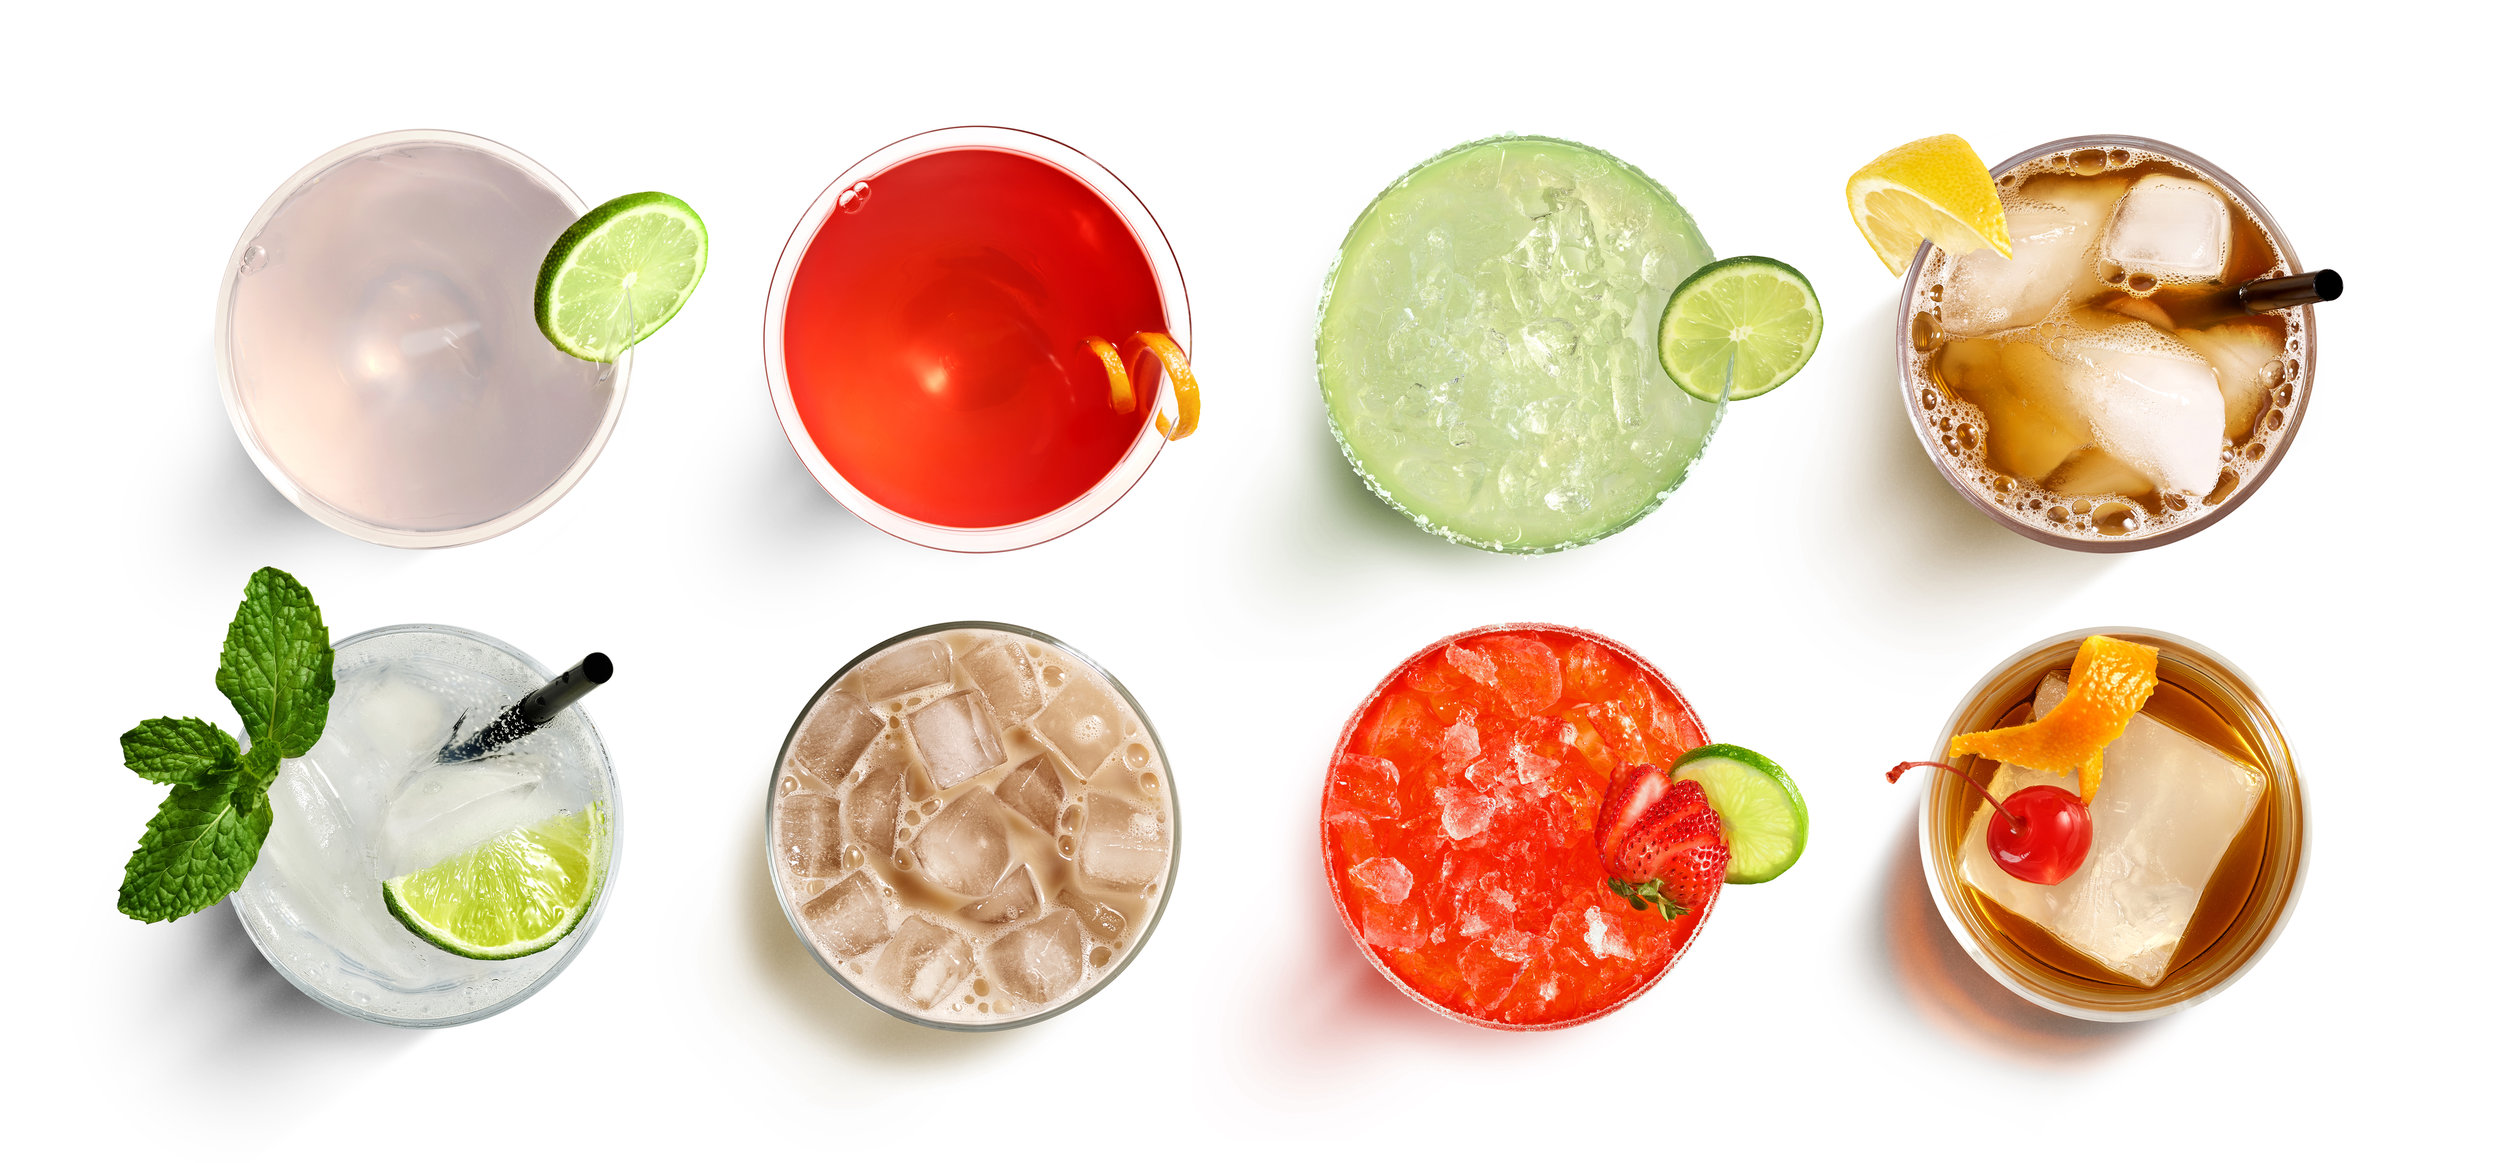 Overhead photographic view of beverages